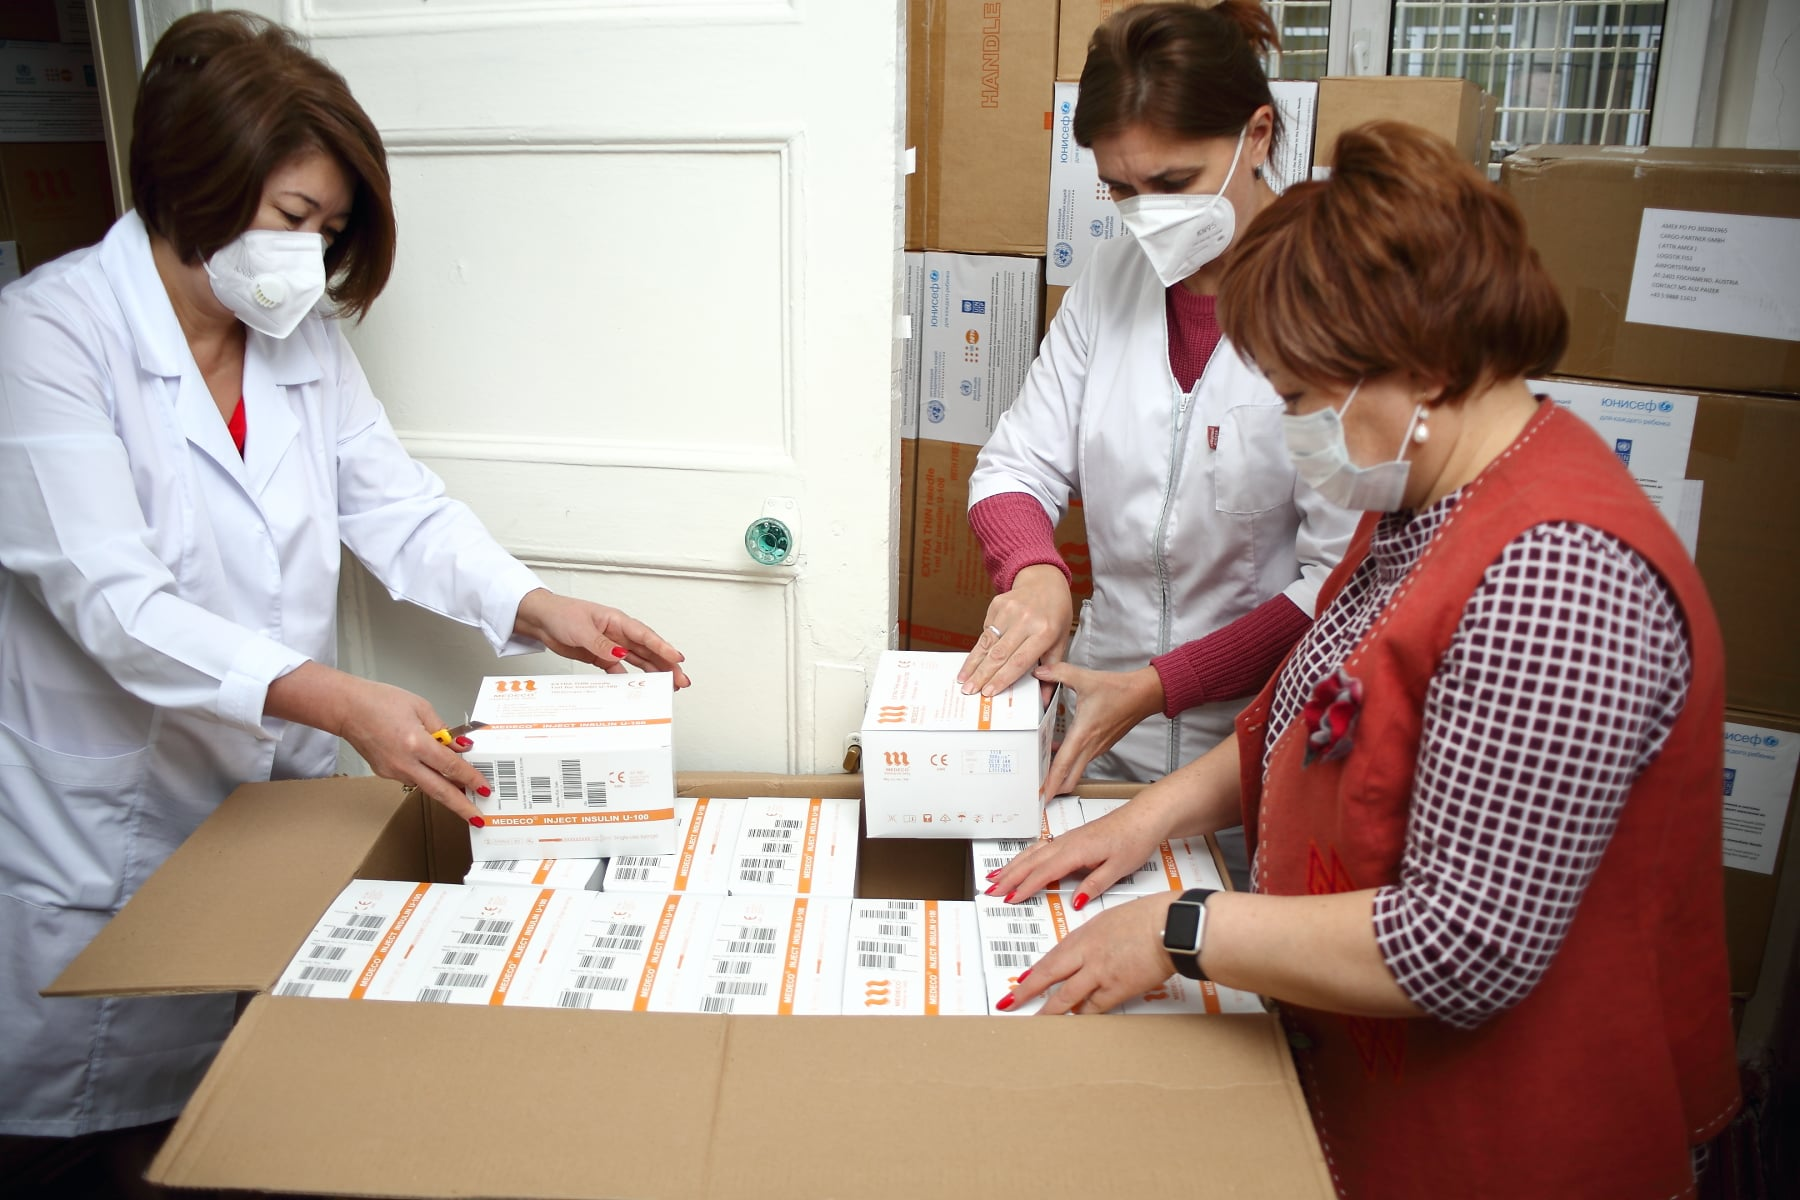 Healthcare workers open boxes of donated syringes and essential supplies to support those of higher risk, including those with diabetes.